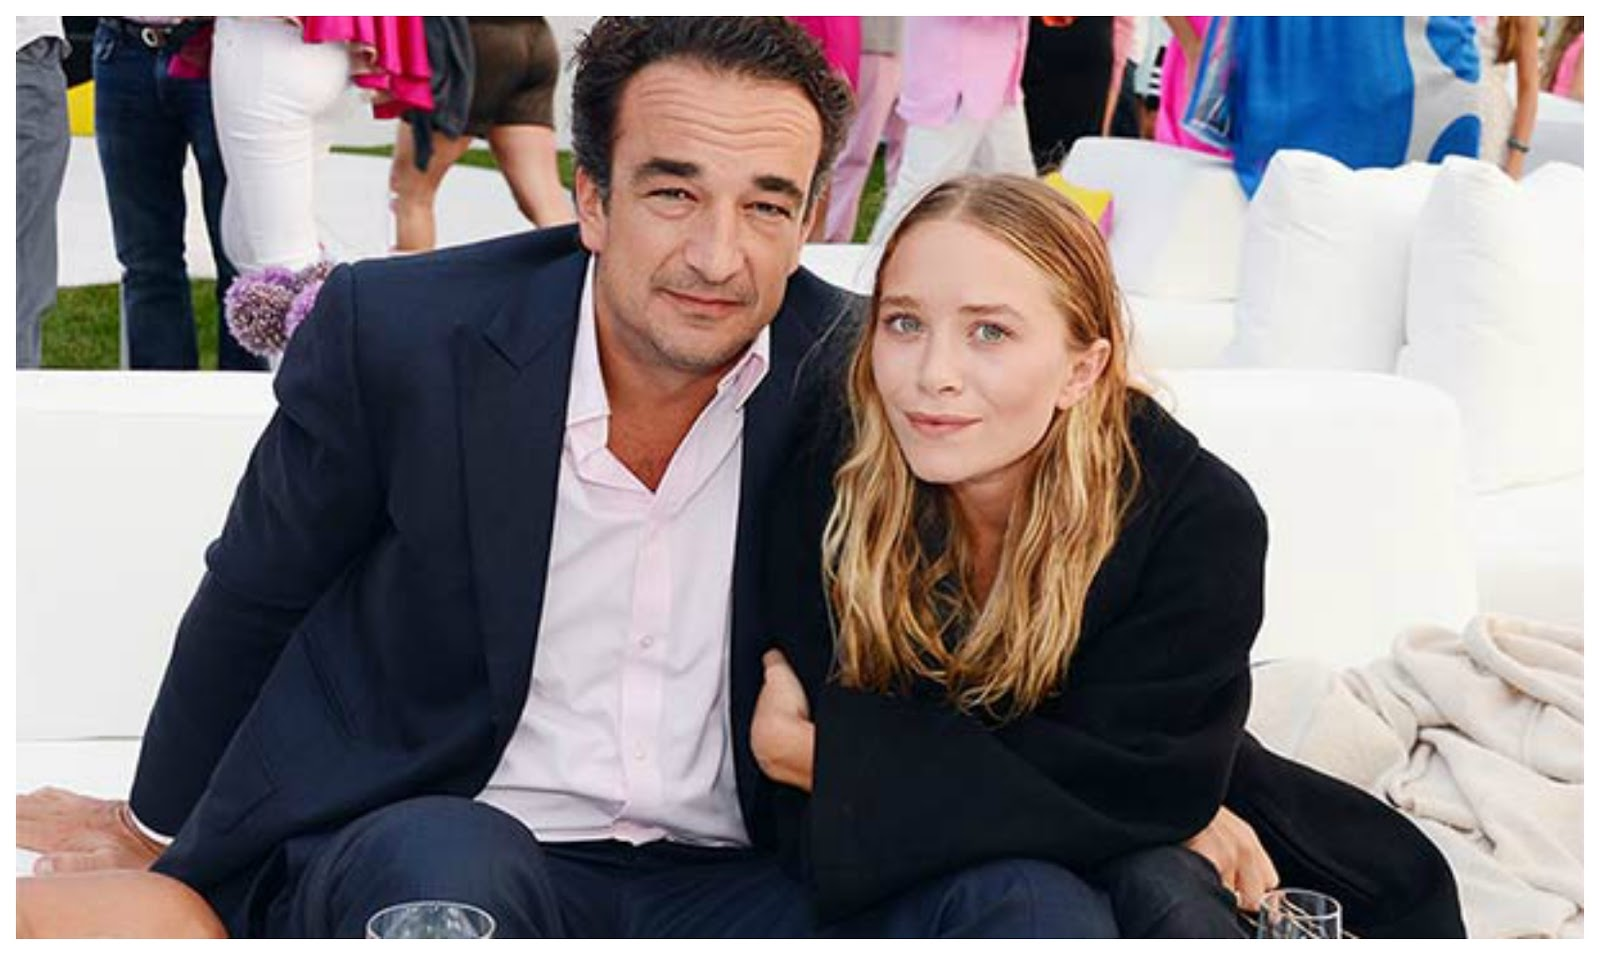 mary kate olsen dating Olivier sarkozy and mary-kate olsen the fashion designer and former 'full house' star has been dating sarkozy, the half-brother of former french president nicolas sarkozy, since 2012 mary-kate .